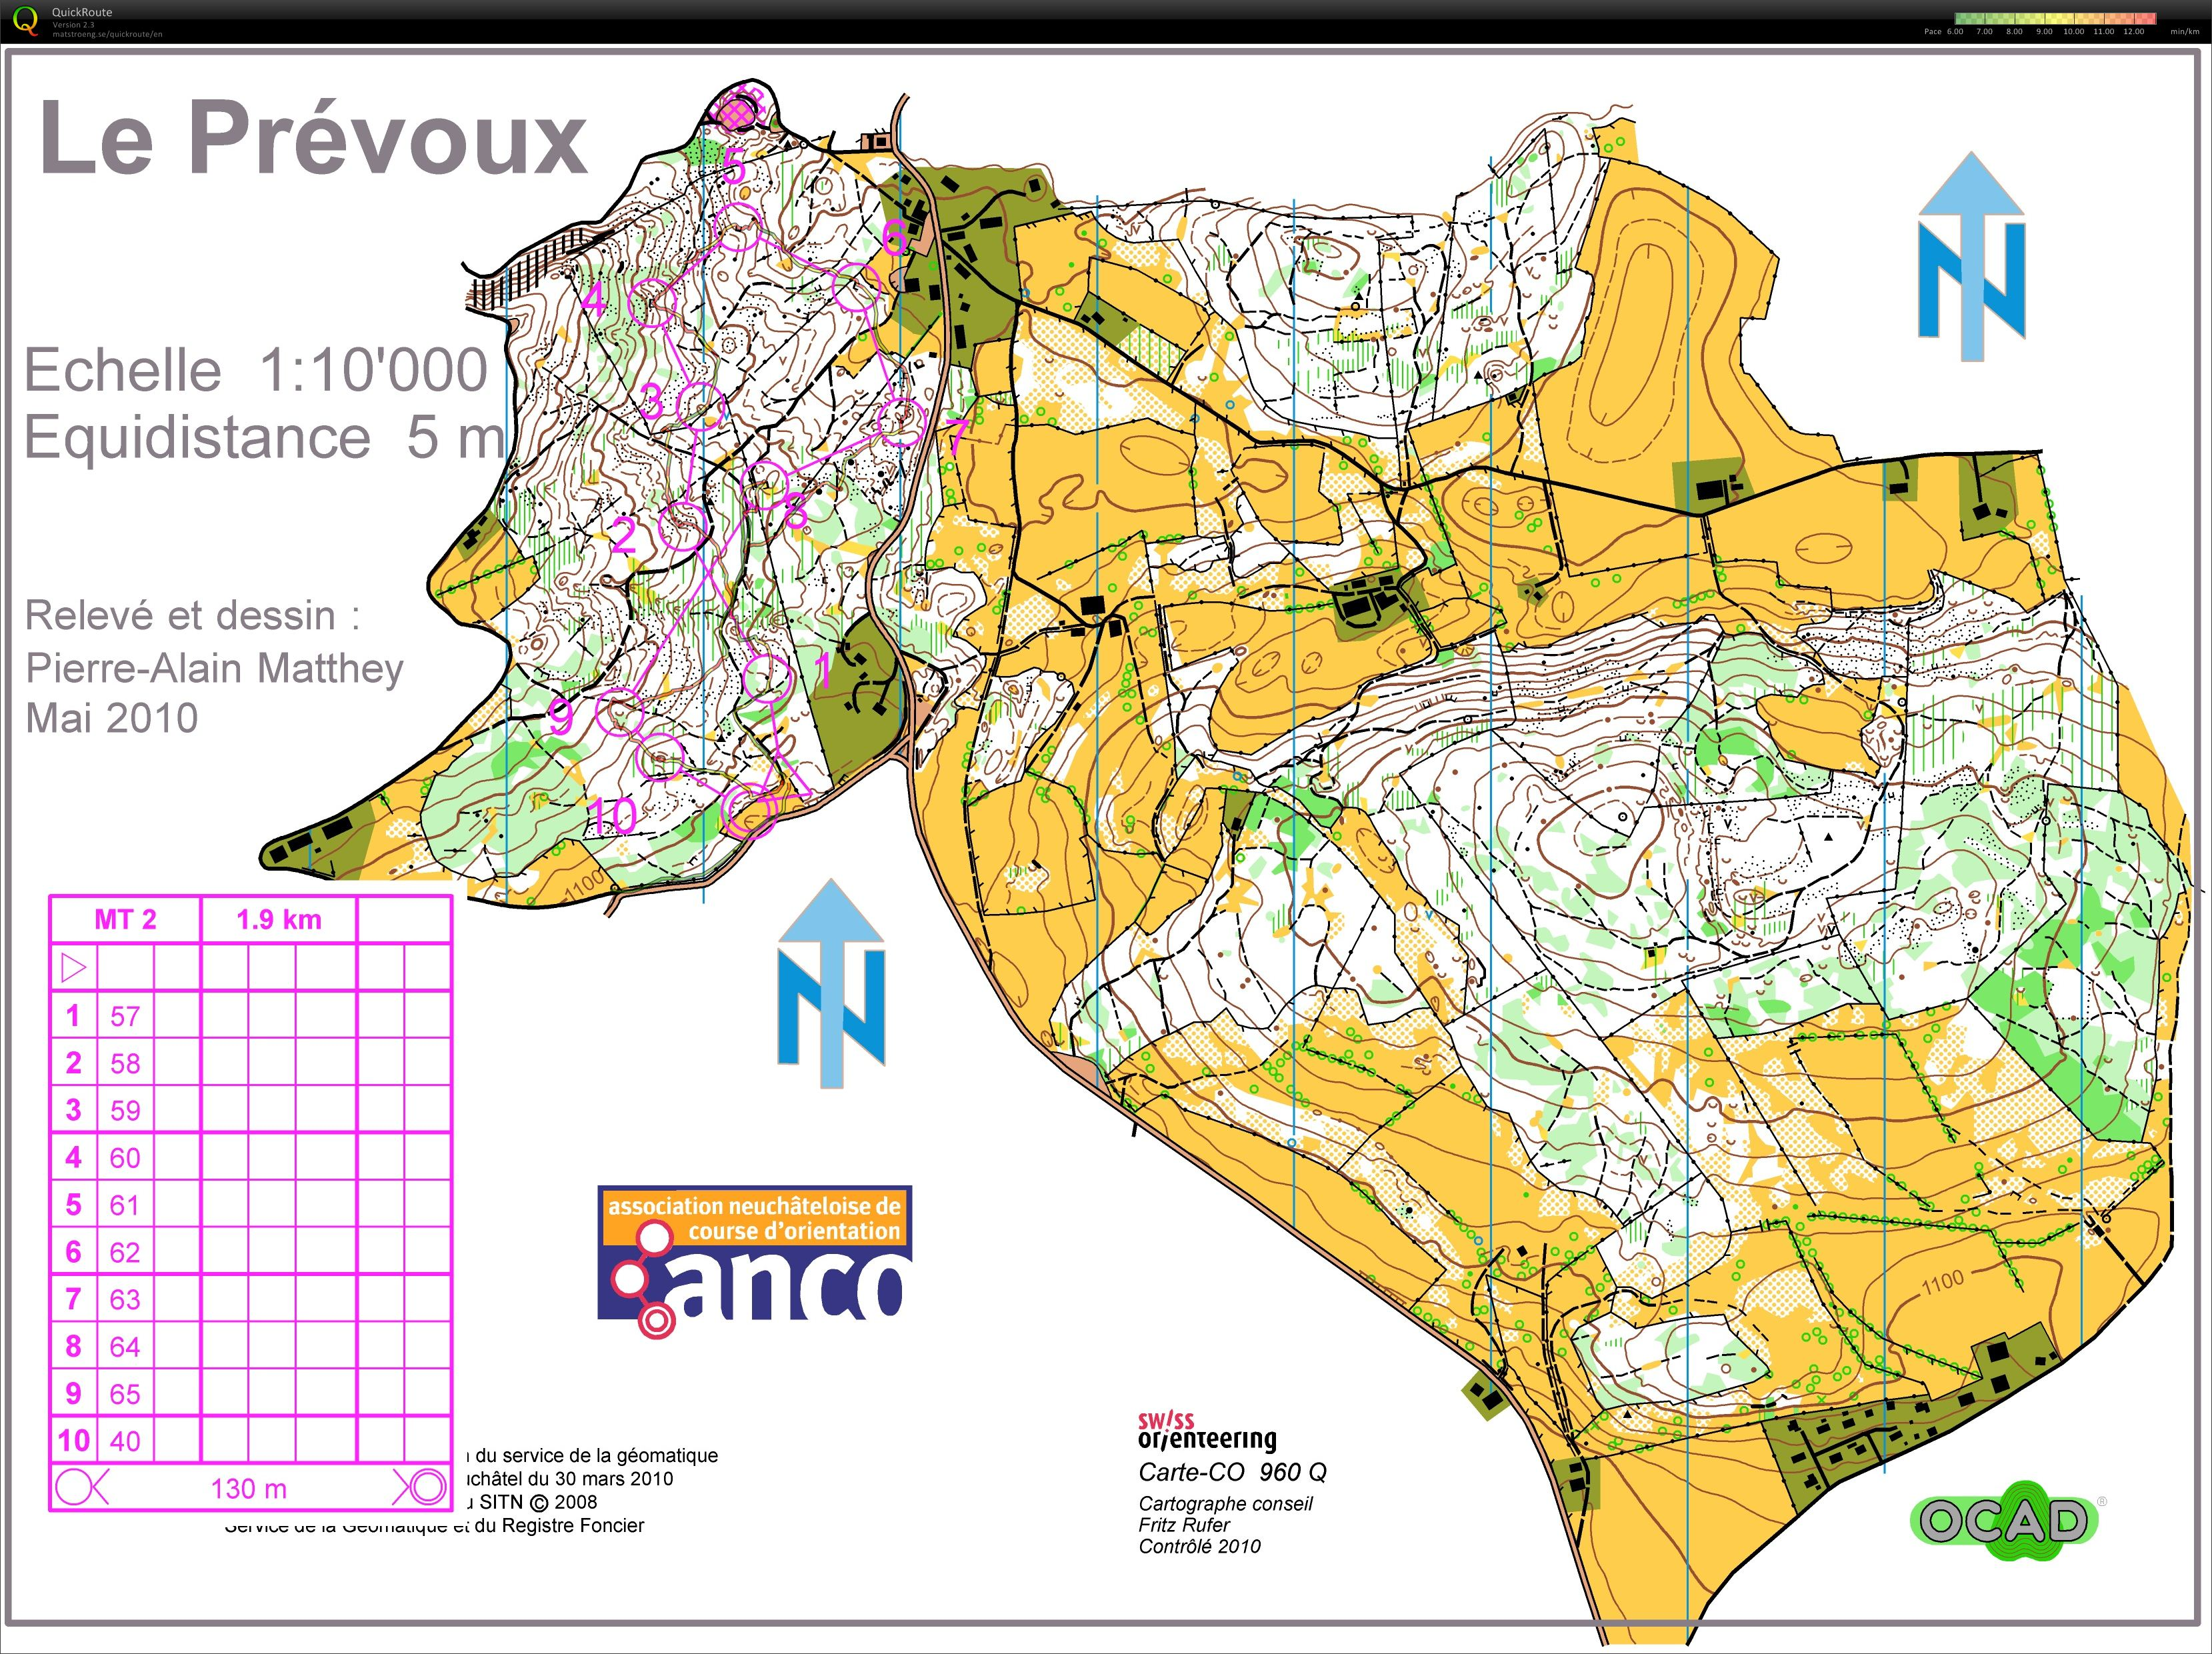 1st loop Training in Le Prévoux (2011-11-10)